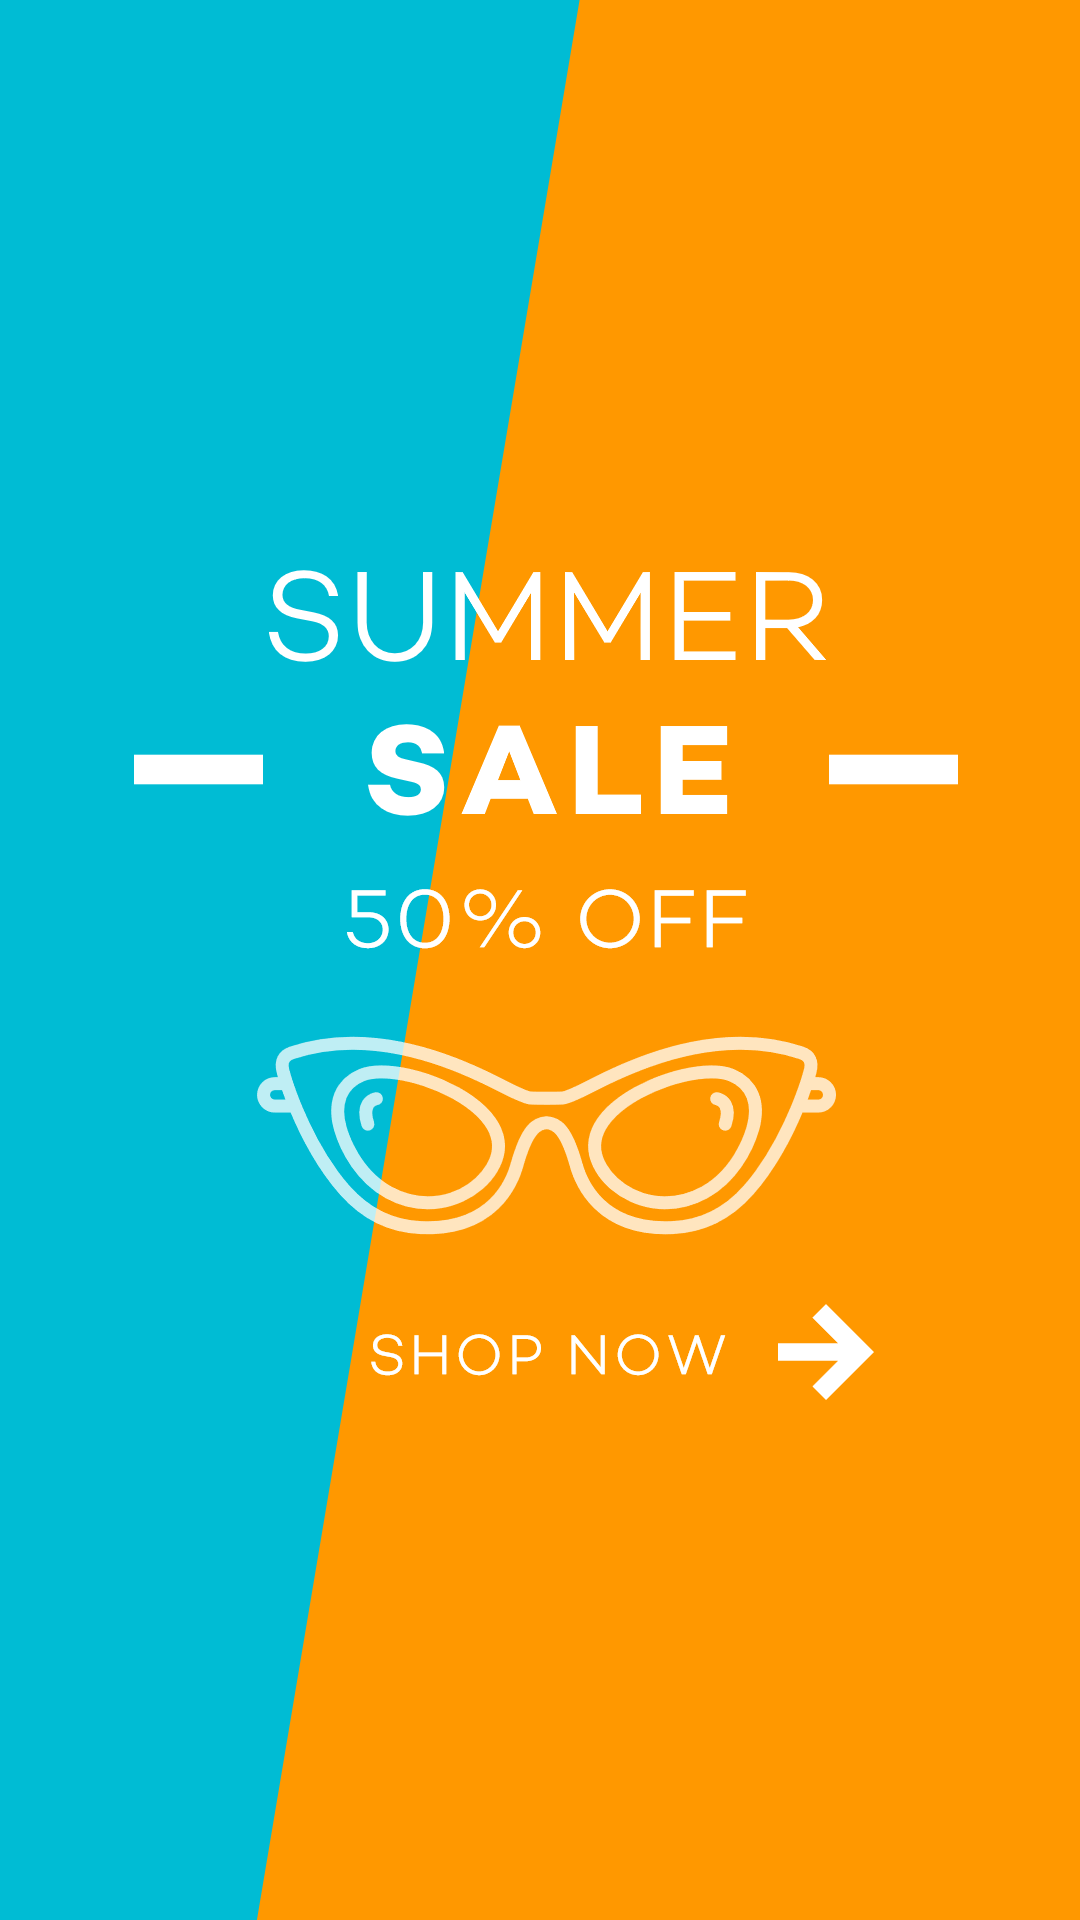 E-commerce Summer Shopping Ad Design  Template